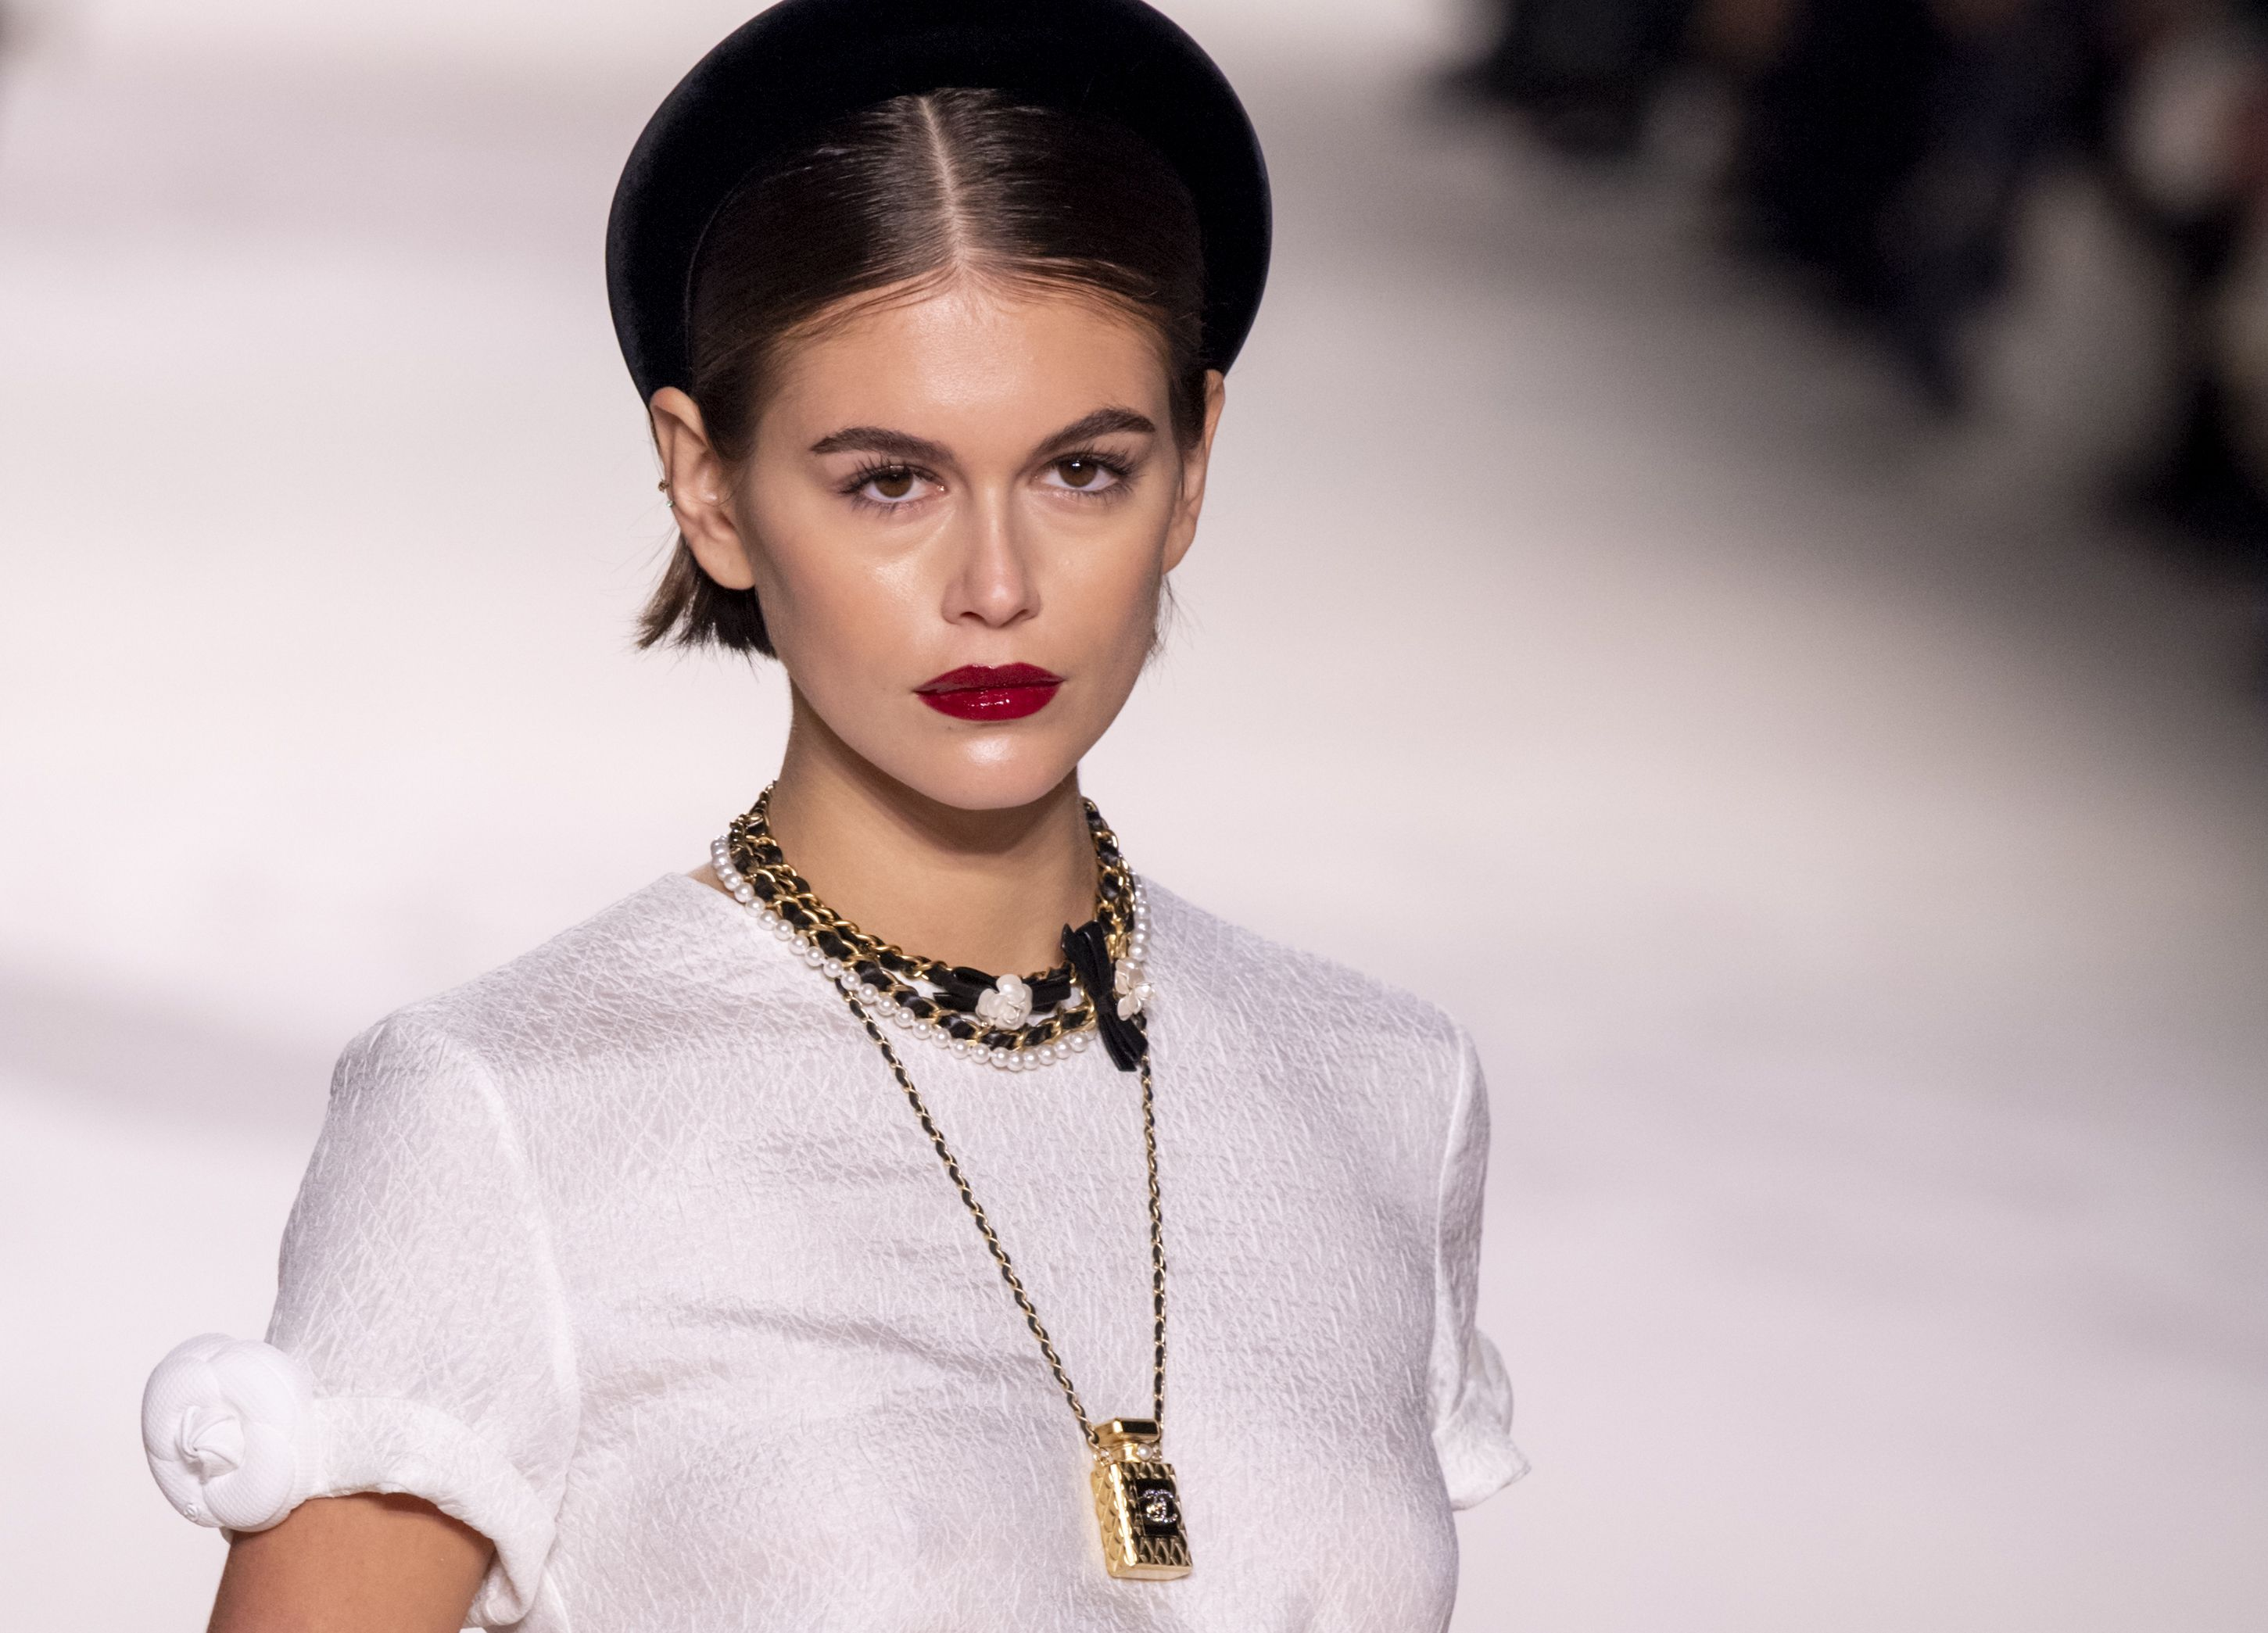 A Chanel show is coming to London this summer